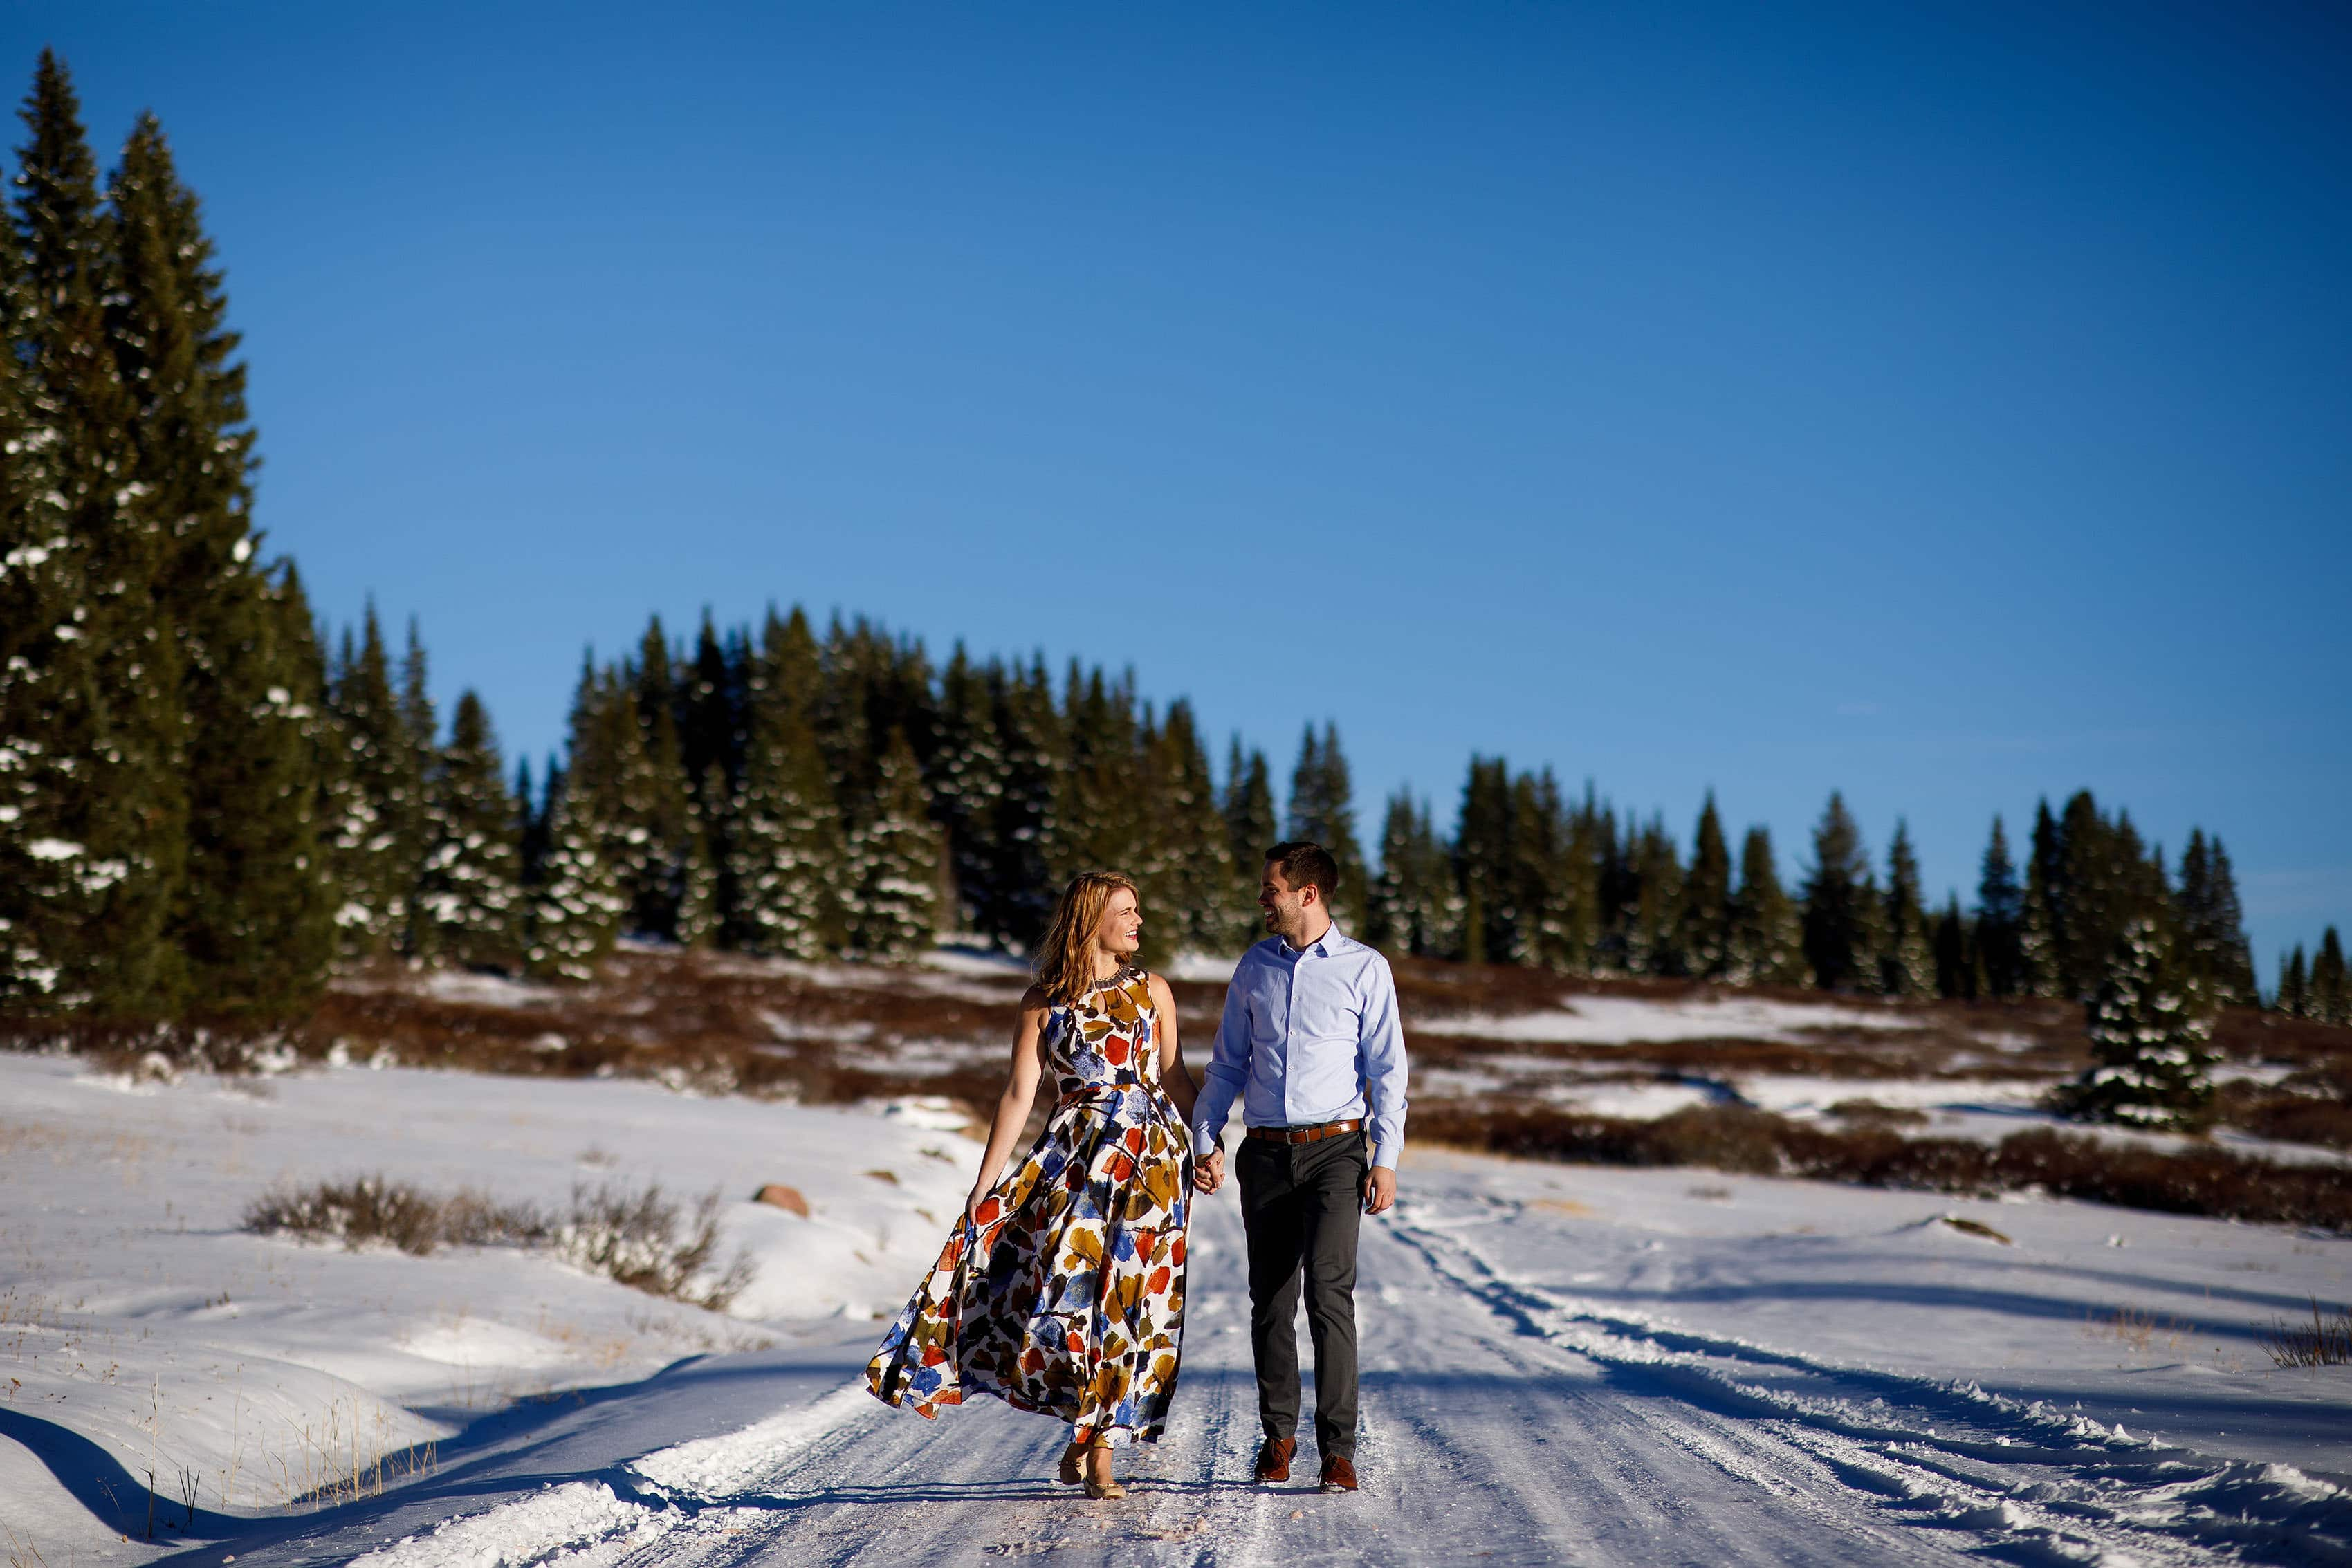 Julia and Micah walk together on the snowpacked road near Shrine Pass in Vail